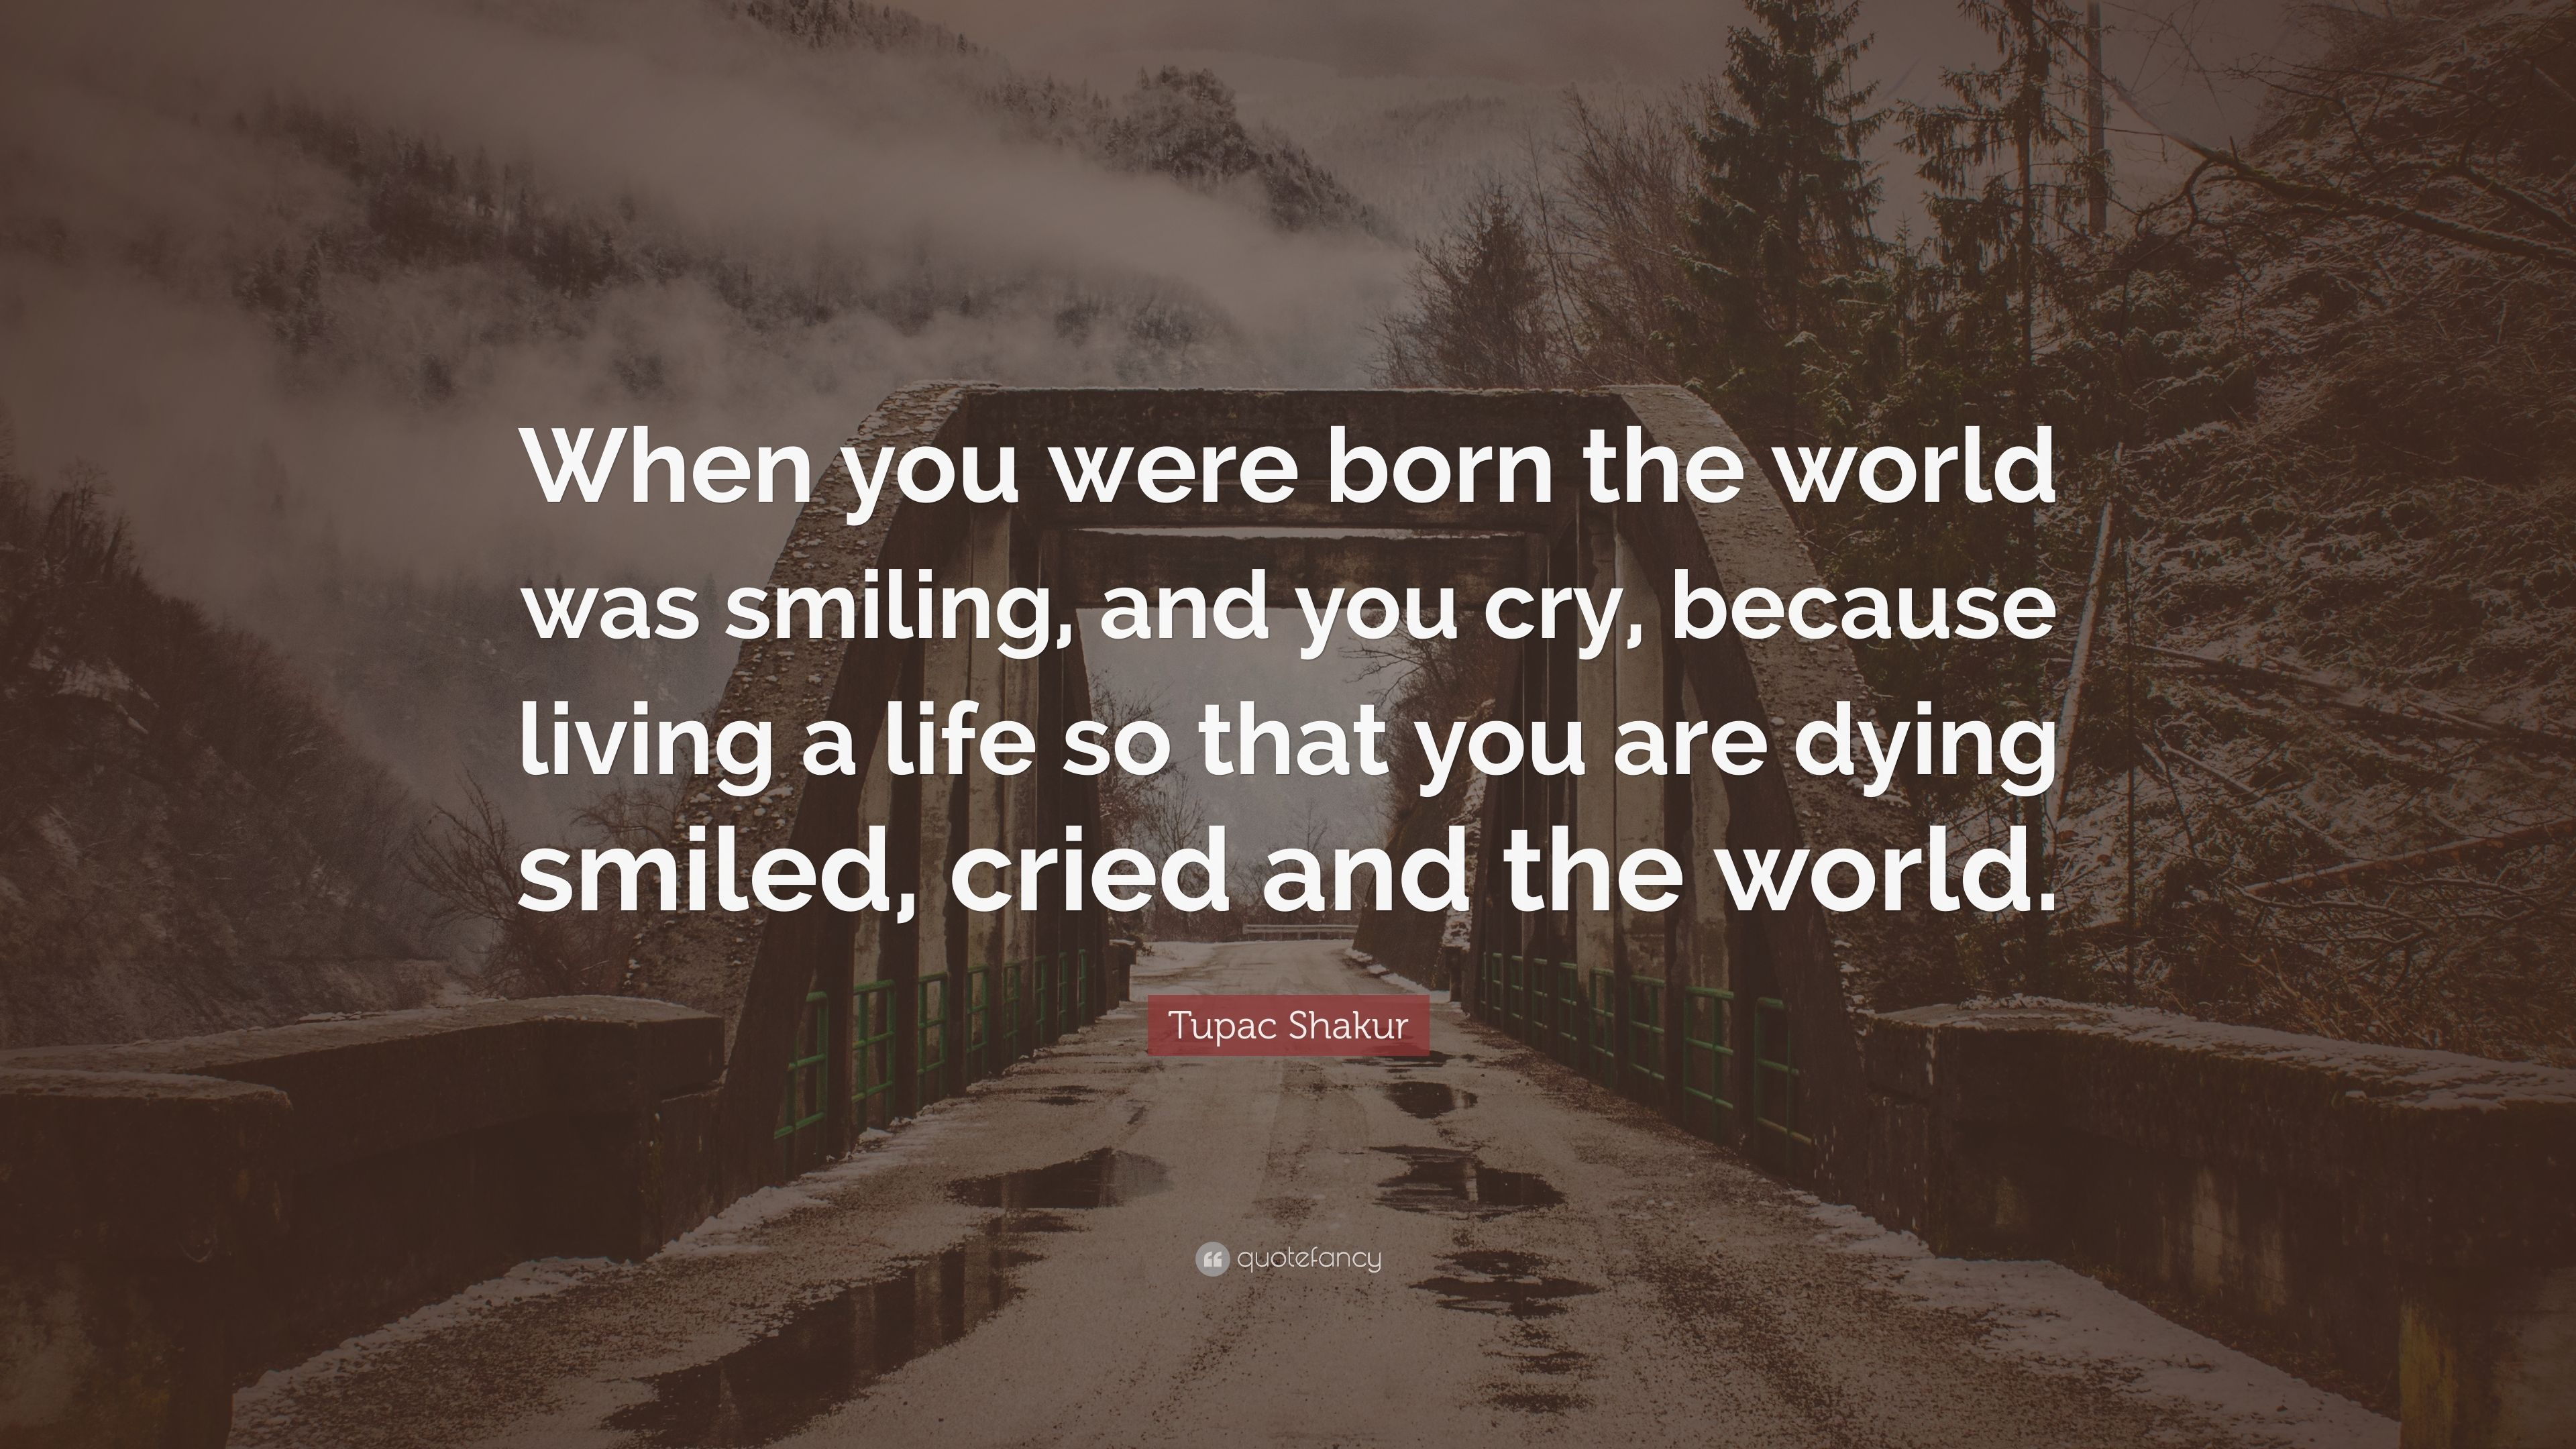 Tupac Shakur Quote When You Were Born The World Was Smiling And